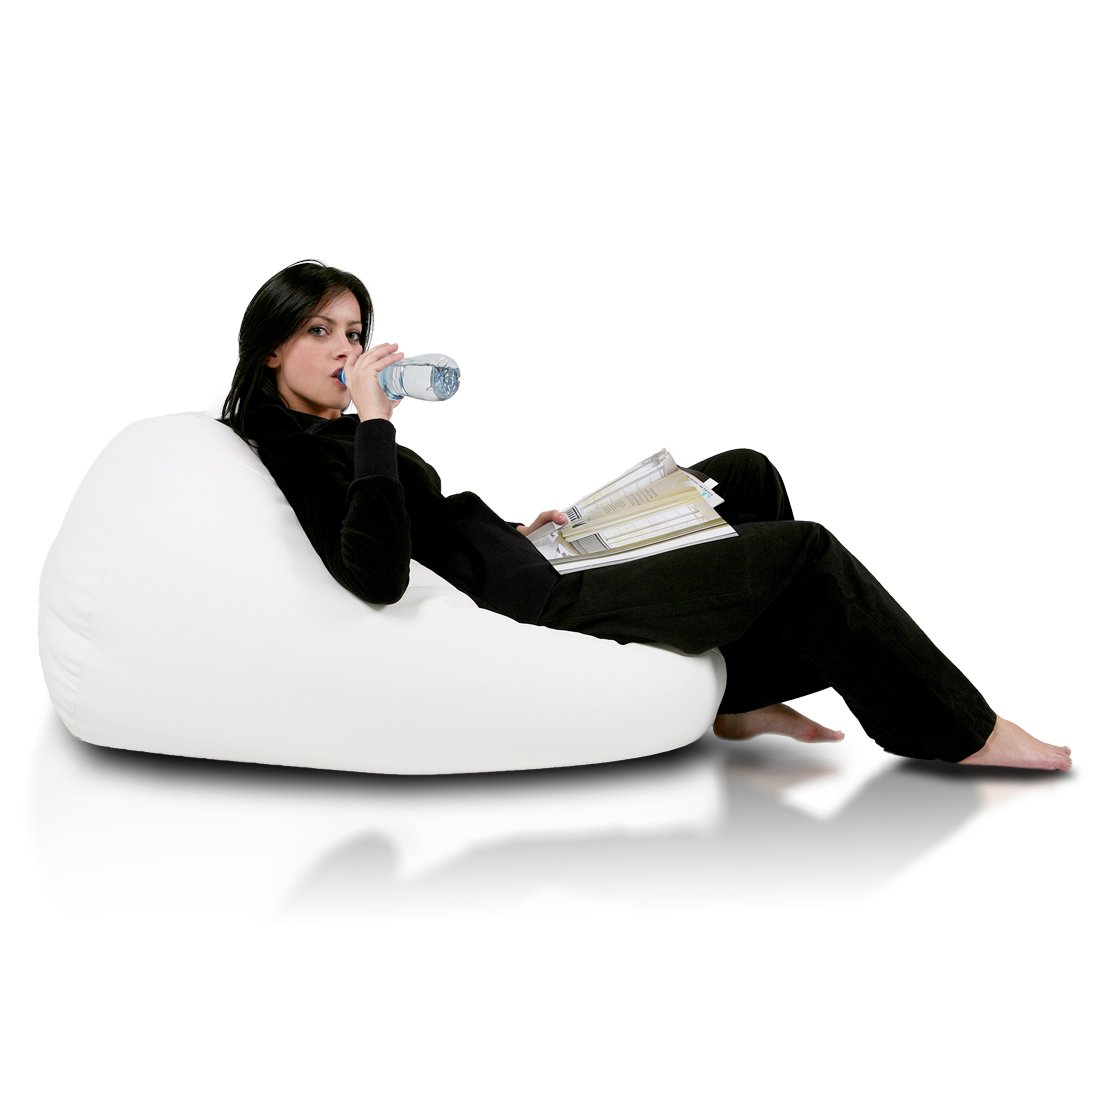 Turbo BeanBags Mega Sack Bean Bag Chair, Large, White